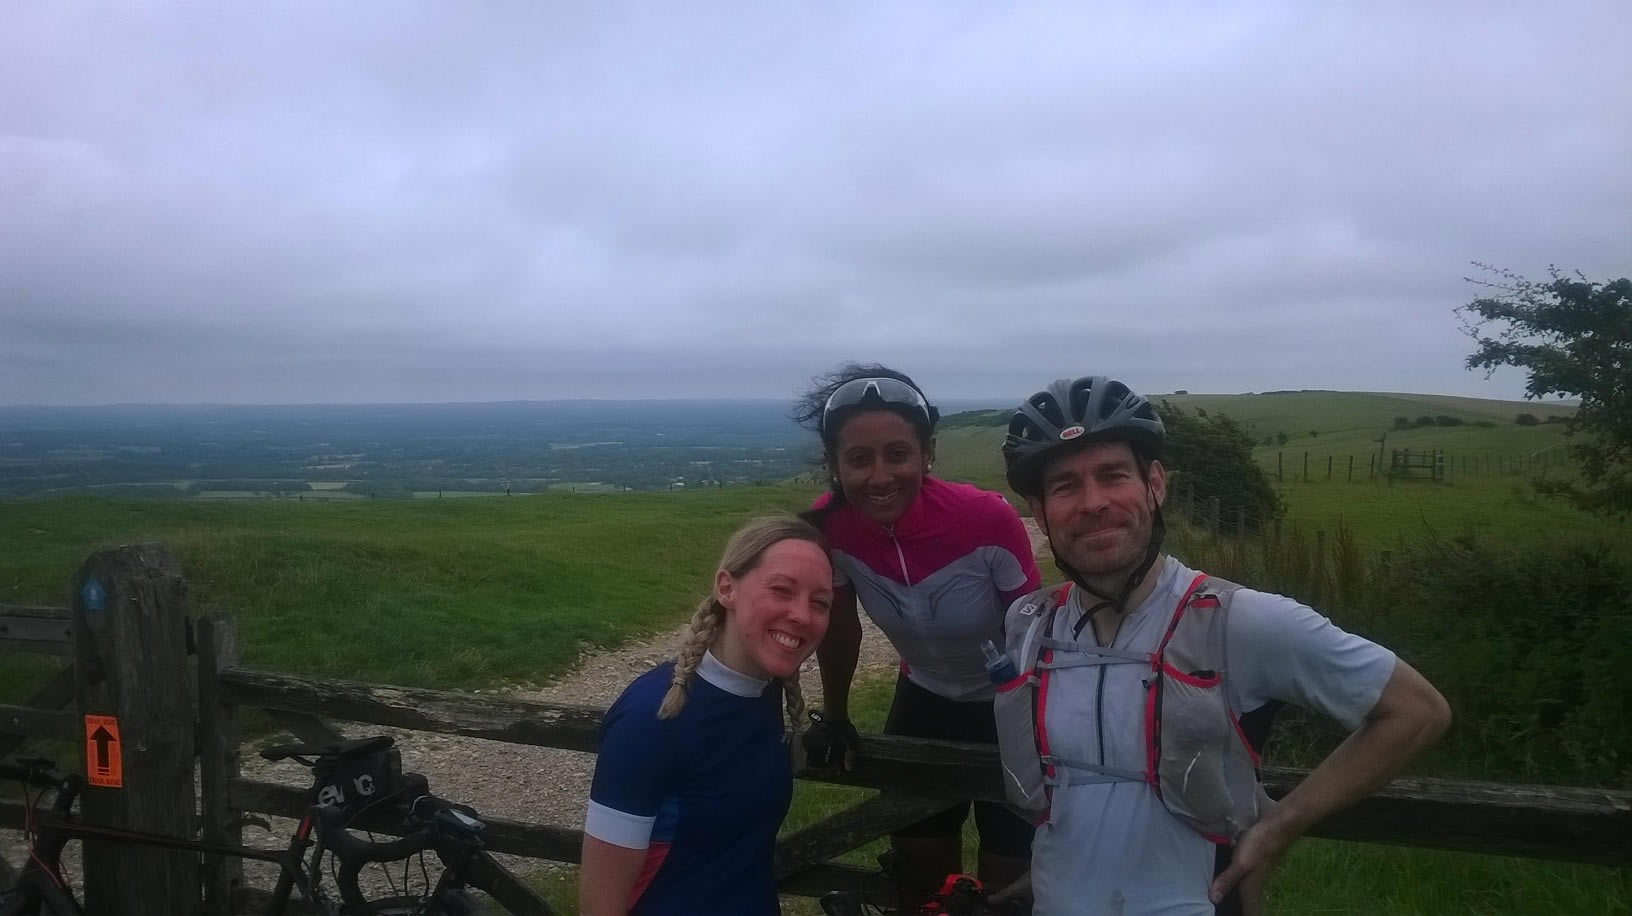 top of Ditchling Beacon on the South Downs Way